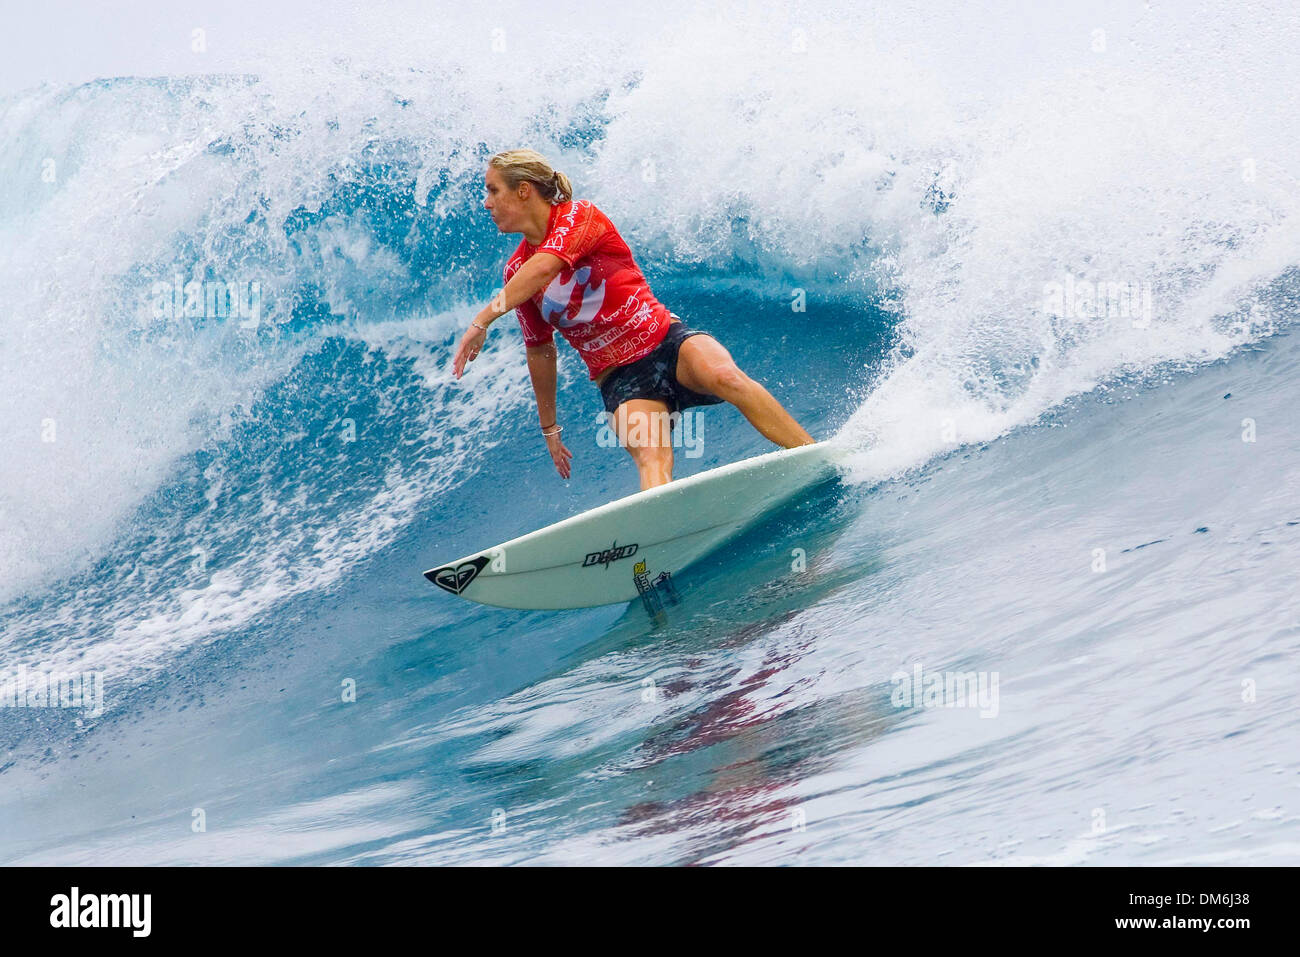 May 09, 2005; Teahupoo, TAHITI; CHELSEA GEORGESON (Gold Coast, Aus) eliminated Rochelle Ballard (Haw) in the quarter finals and defending Billabong Pro champion and reigning world champion Sofia Mulanovich (Peru) in the semi finals at the Billabong Pro Tahiti. Georgeson advanced to the finals that are expected to be surfed later. Presently the event is on hold, with only 2 heats re - Stock Image